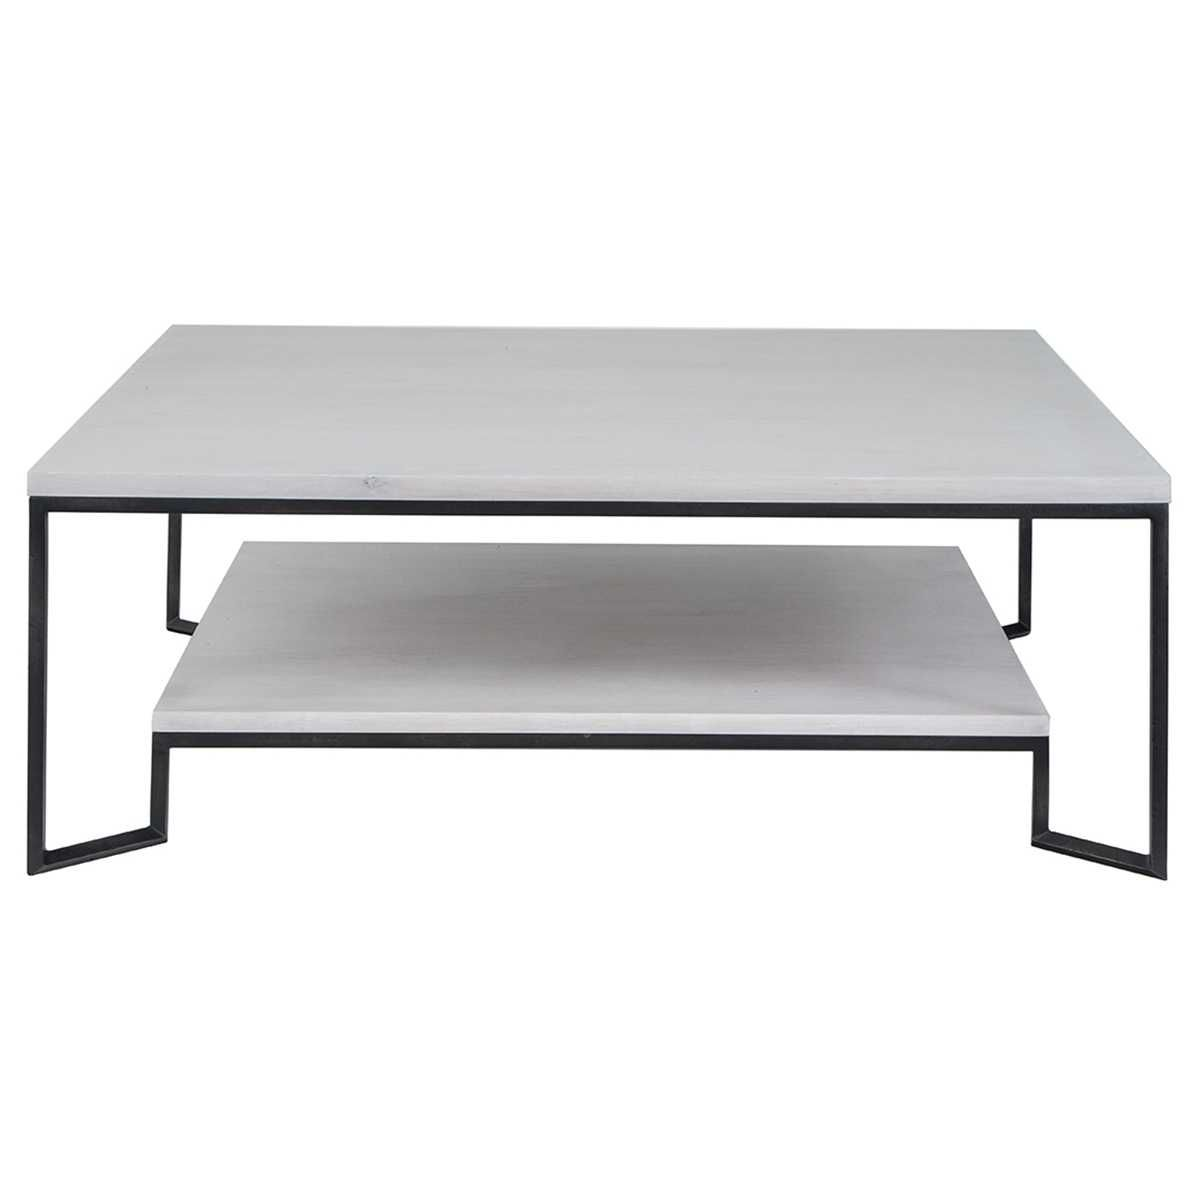 Redford House Furniture Ottis Coffee Table | Candelabra, Inc.